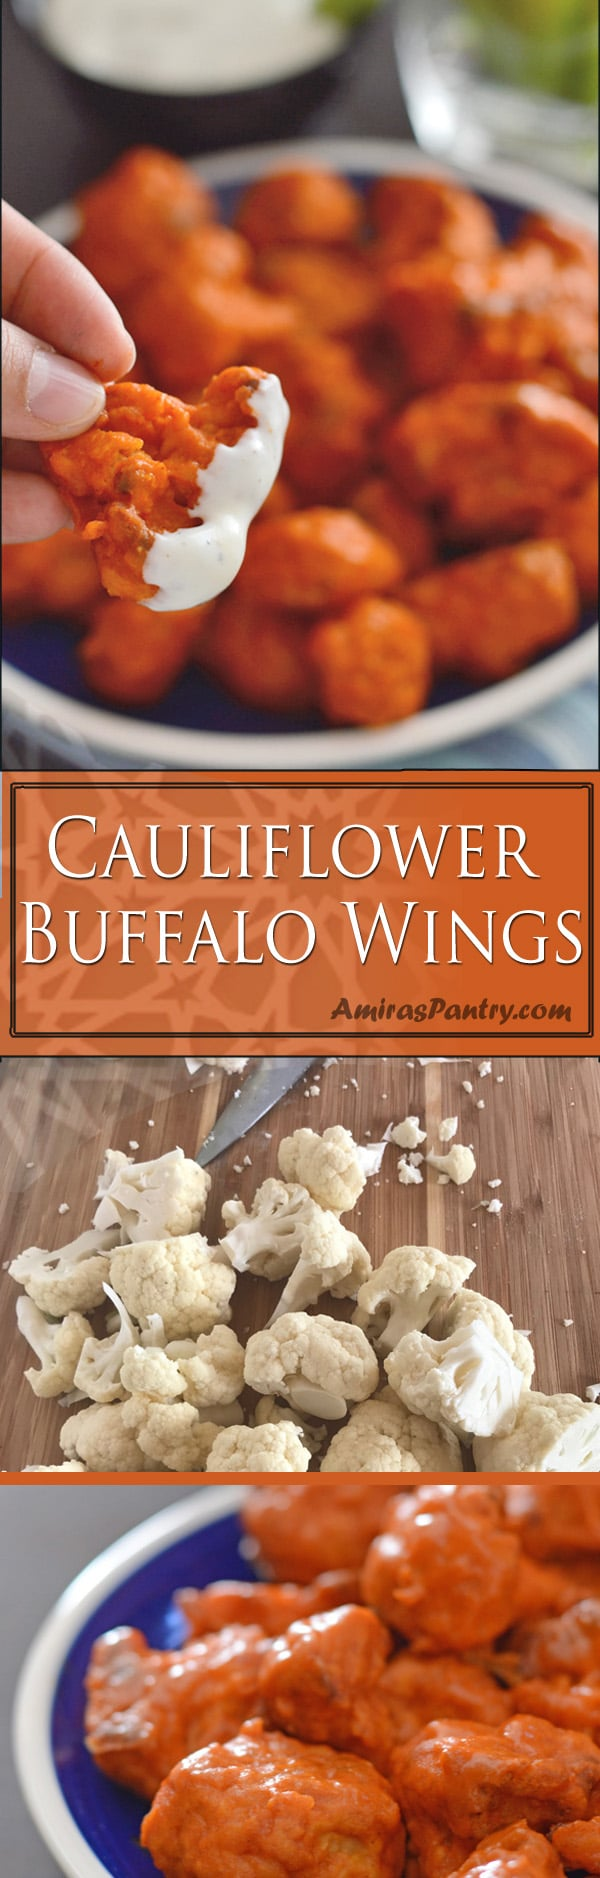 Crispy cauliflower buffalo wings recipe, this is not a false statement. Thesebuffalo style cauliflower bites are truly SERIOUSLY crispy. A healthier alternative to the traditional buffalo wings.